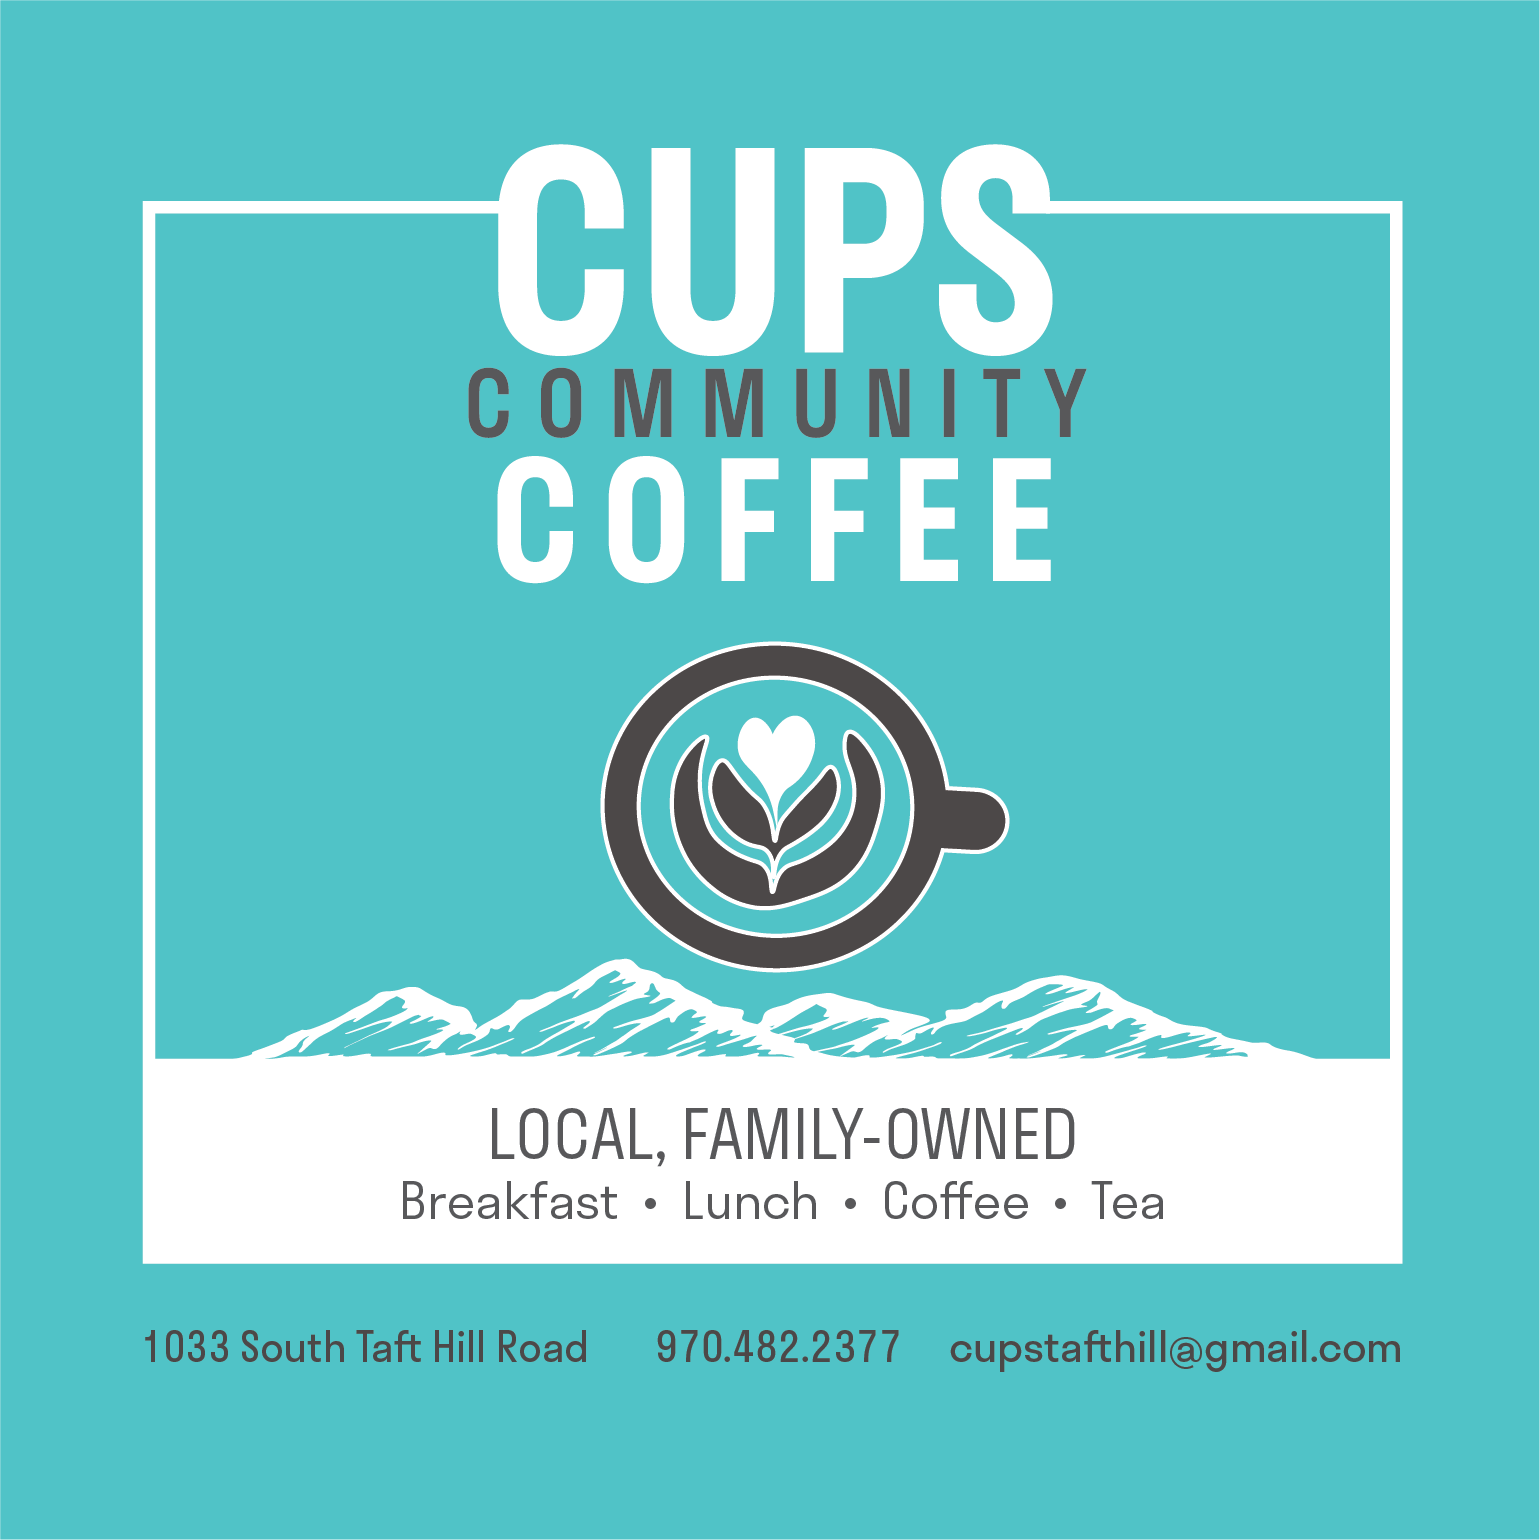 Cups Community Coffee container sticker